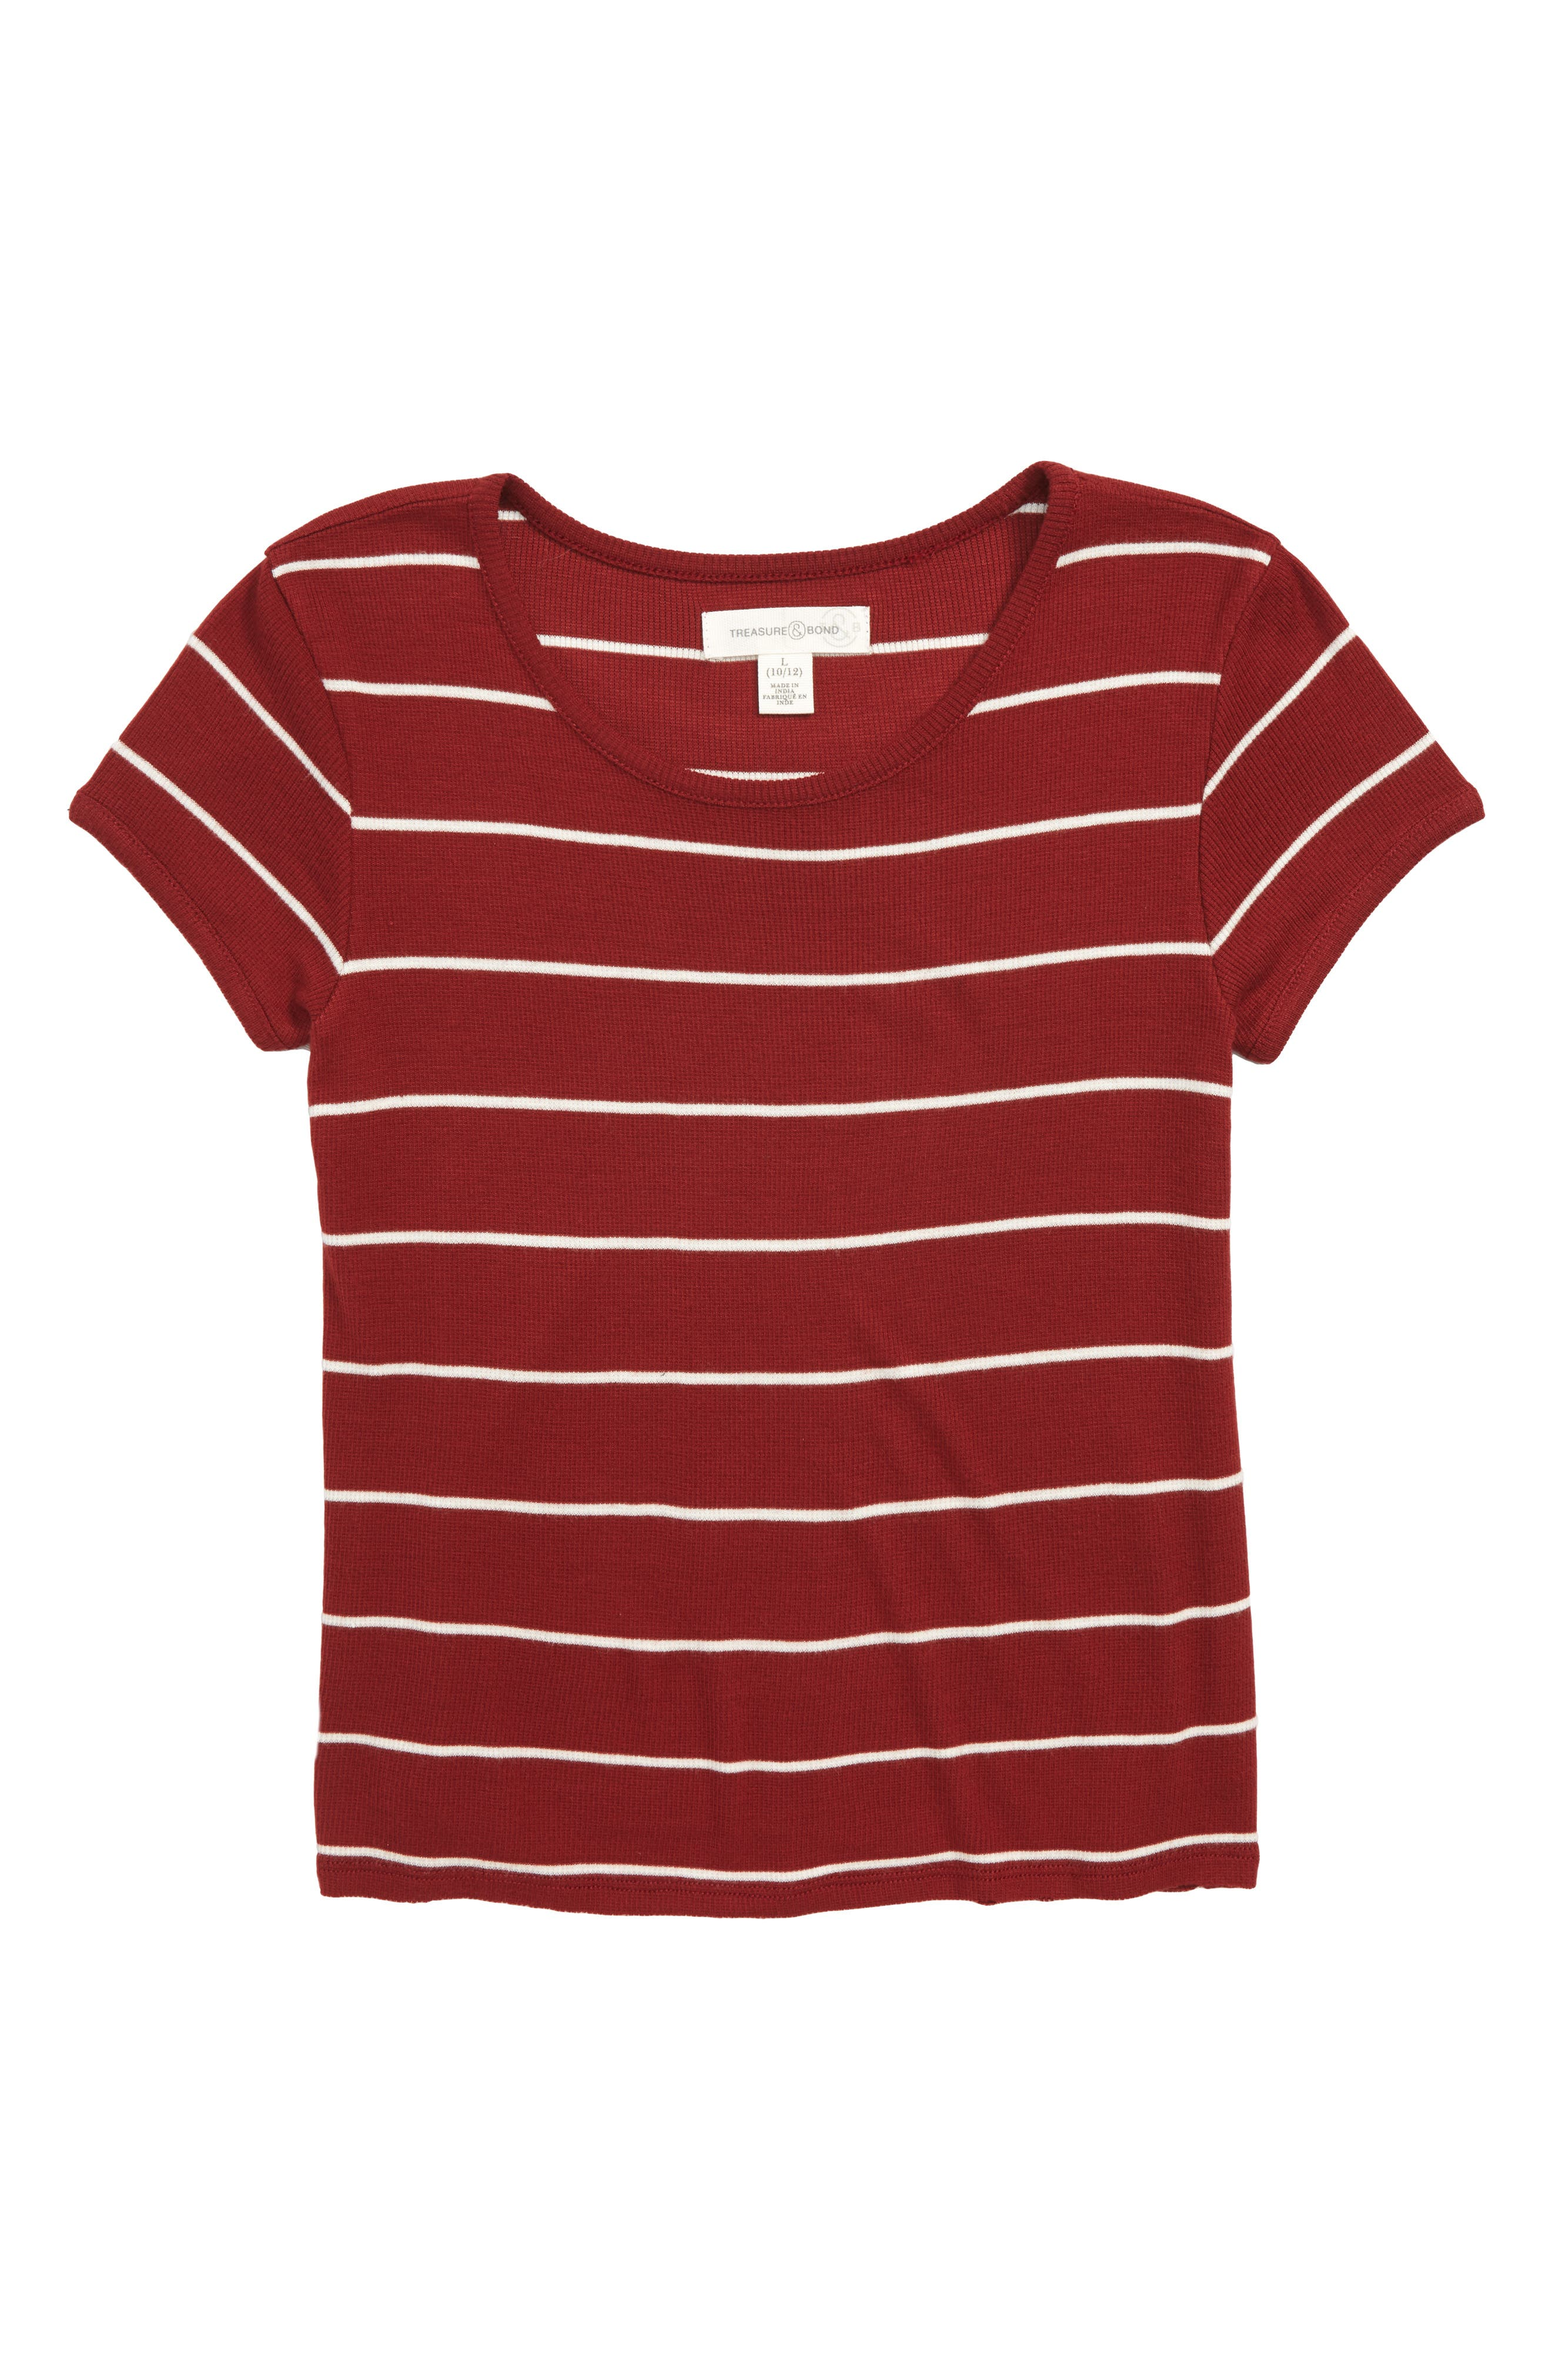 Stripe Knit Tee,                             Main thumbnail 1, color,                             Red Rosewood- Ivory Stripe